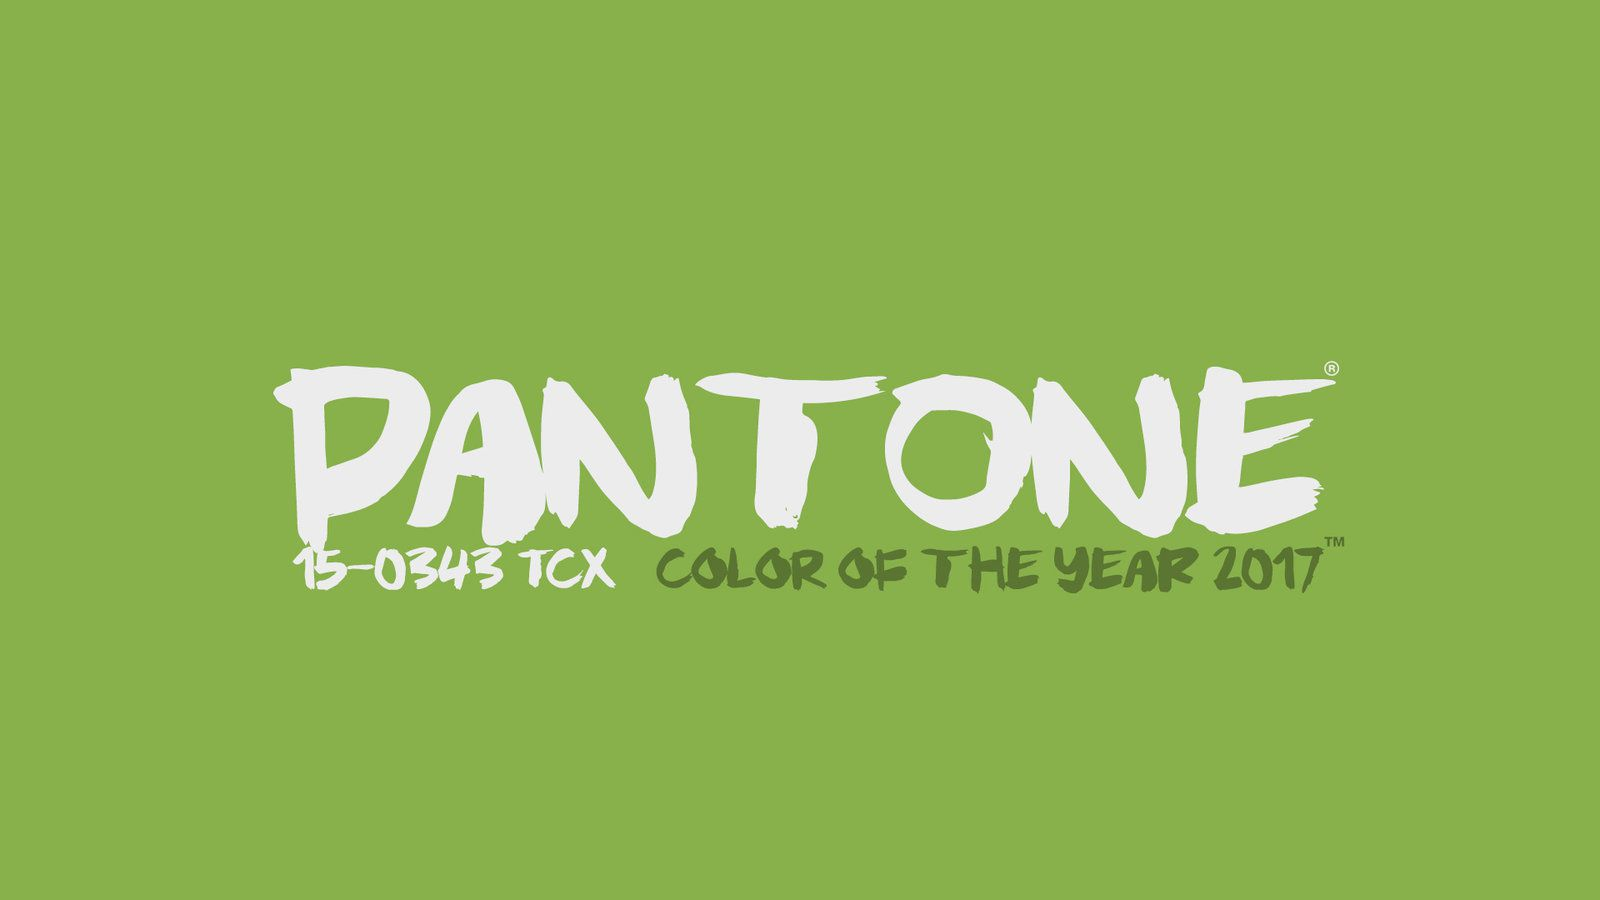 Pantone 2017 Pantone Color Of The Year 2017 Wedding Events Blog D Asigner